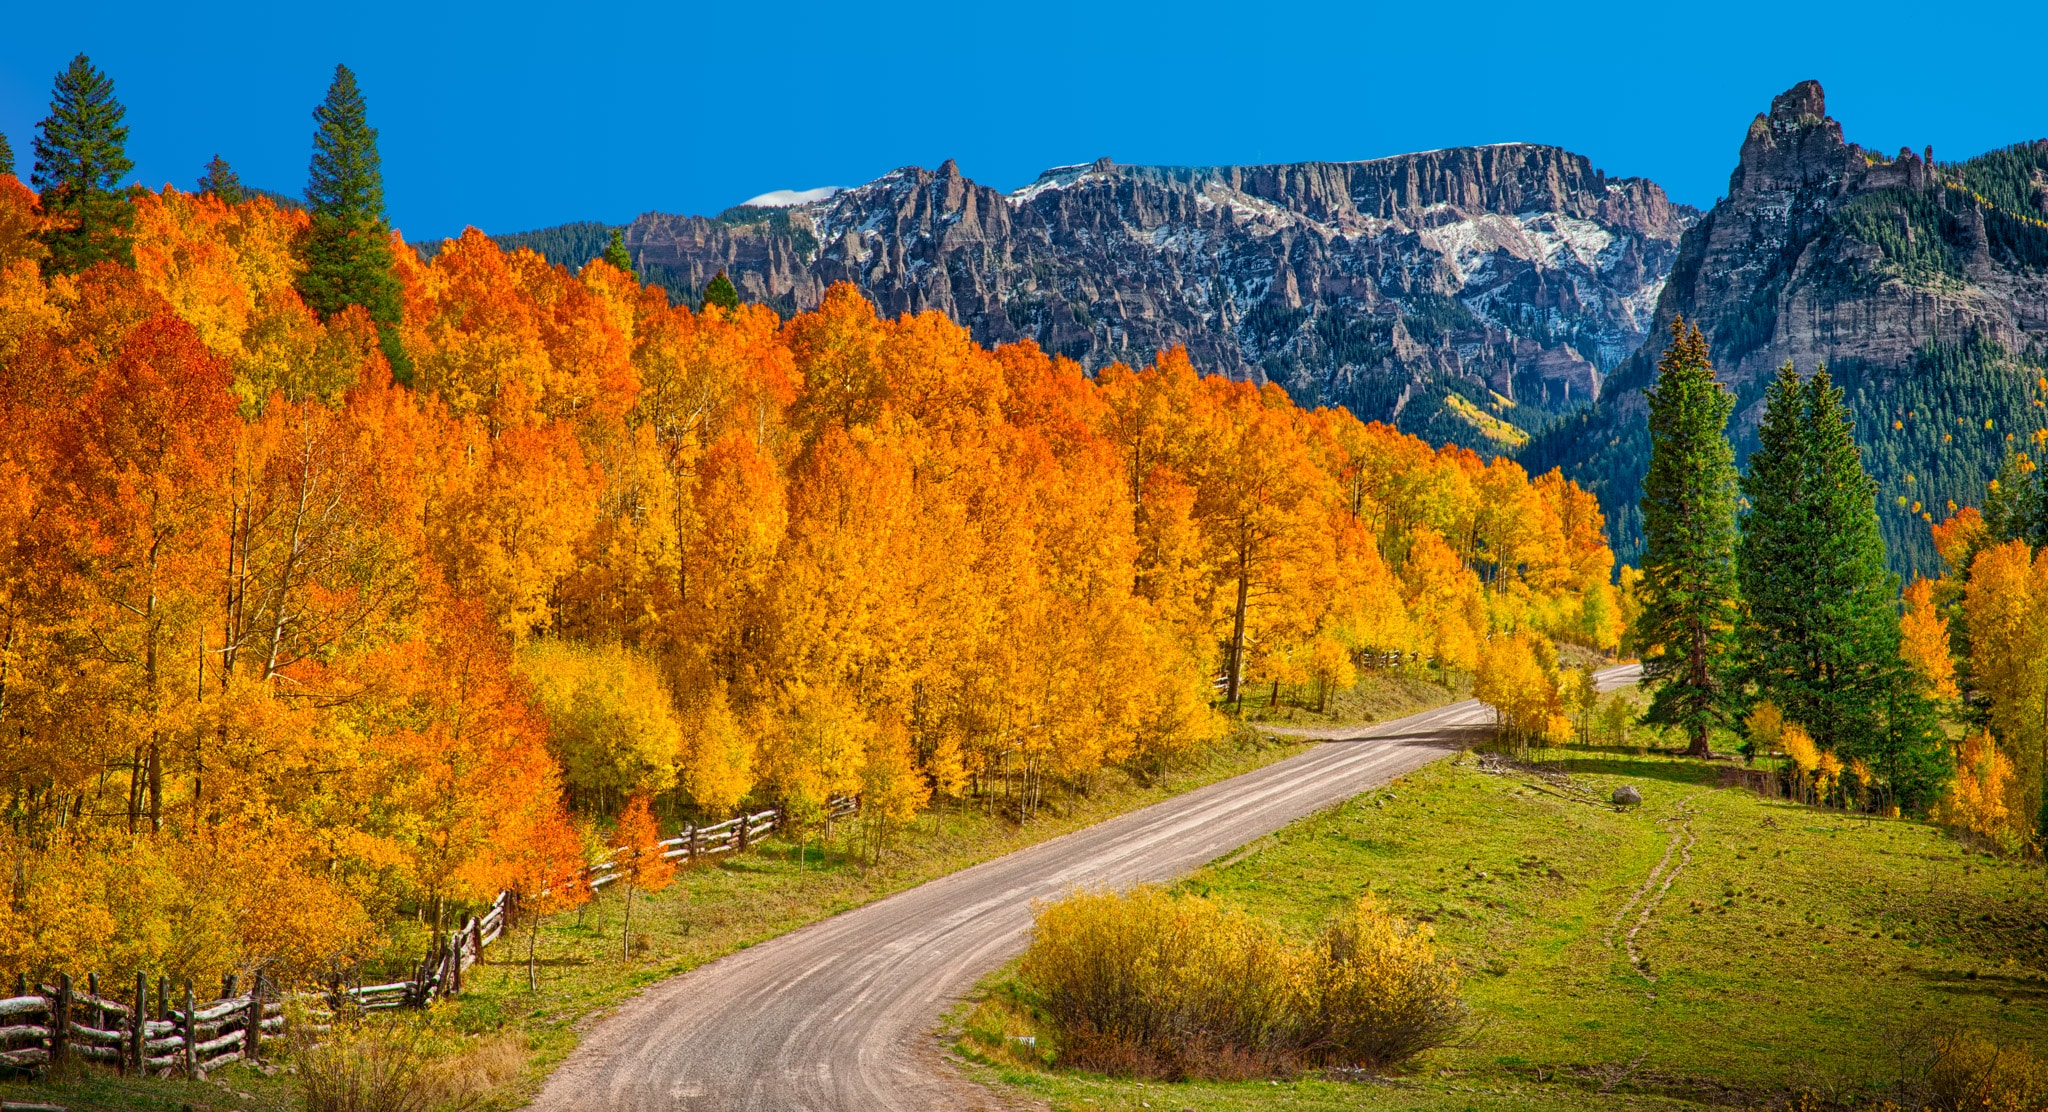 Flaming aspens and a log fence border Owl Creek Pass Road, heading toward the Cimarron Mountains near Silver Jack Reservoir between Ridgway and Cimarron, Colorado.